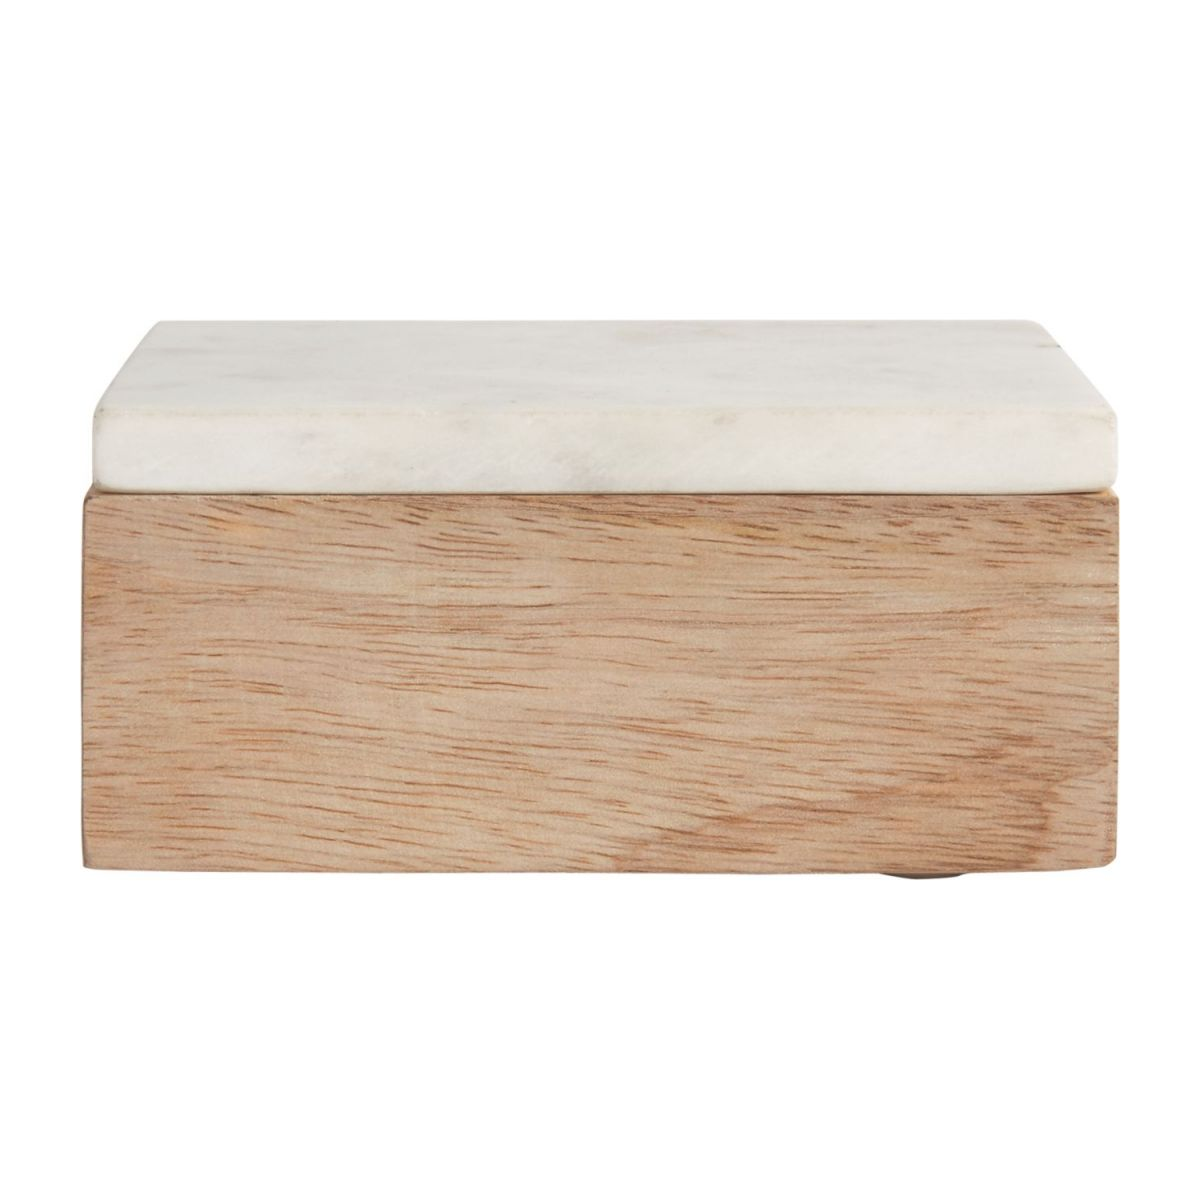 Box made of wood and marble n°4